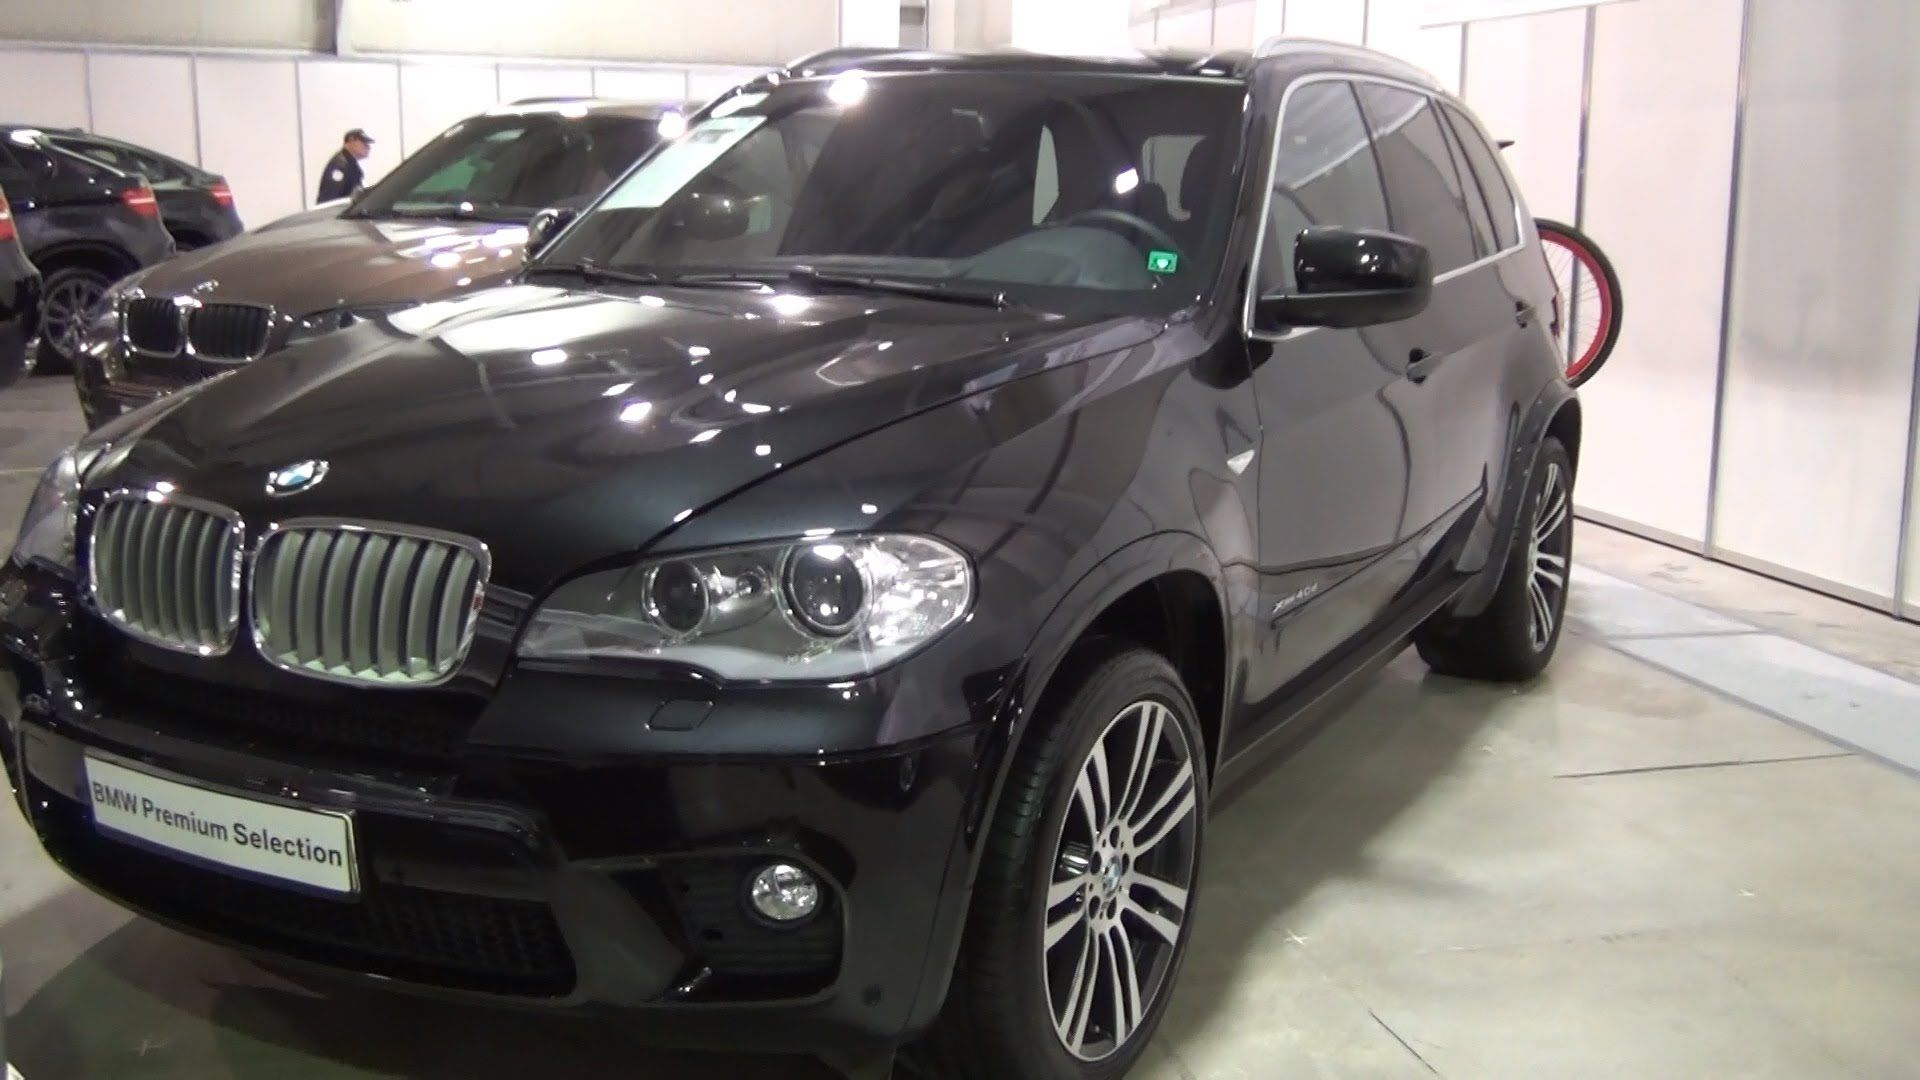 Bmw X5 Xdrive 40d 2012 Cars Bmw X5 Bmw Motor Car